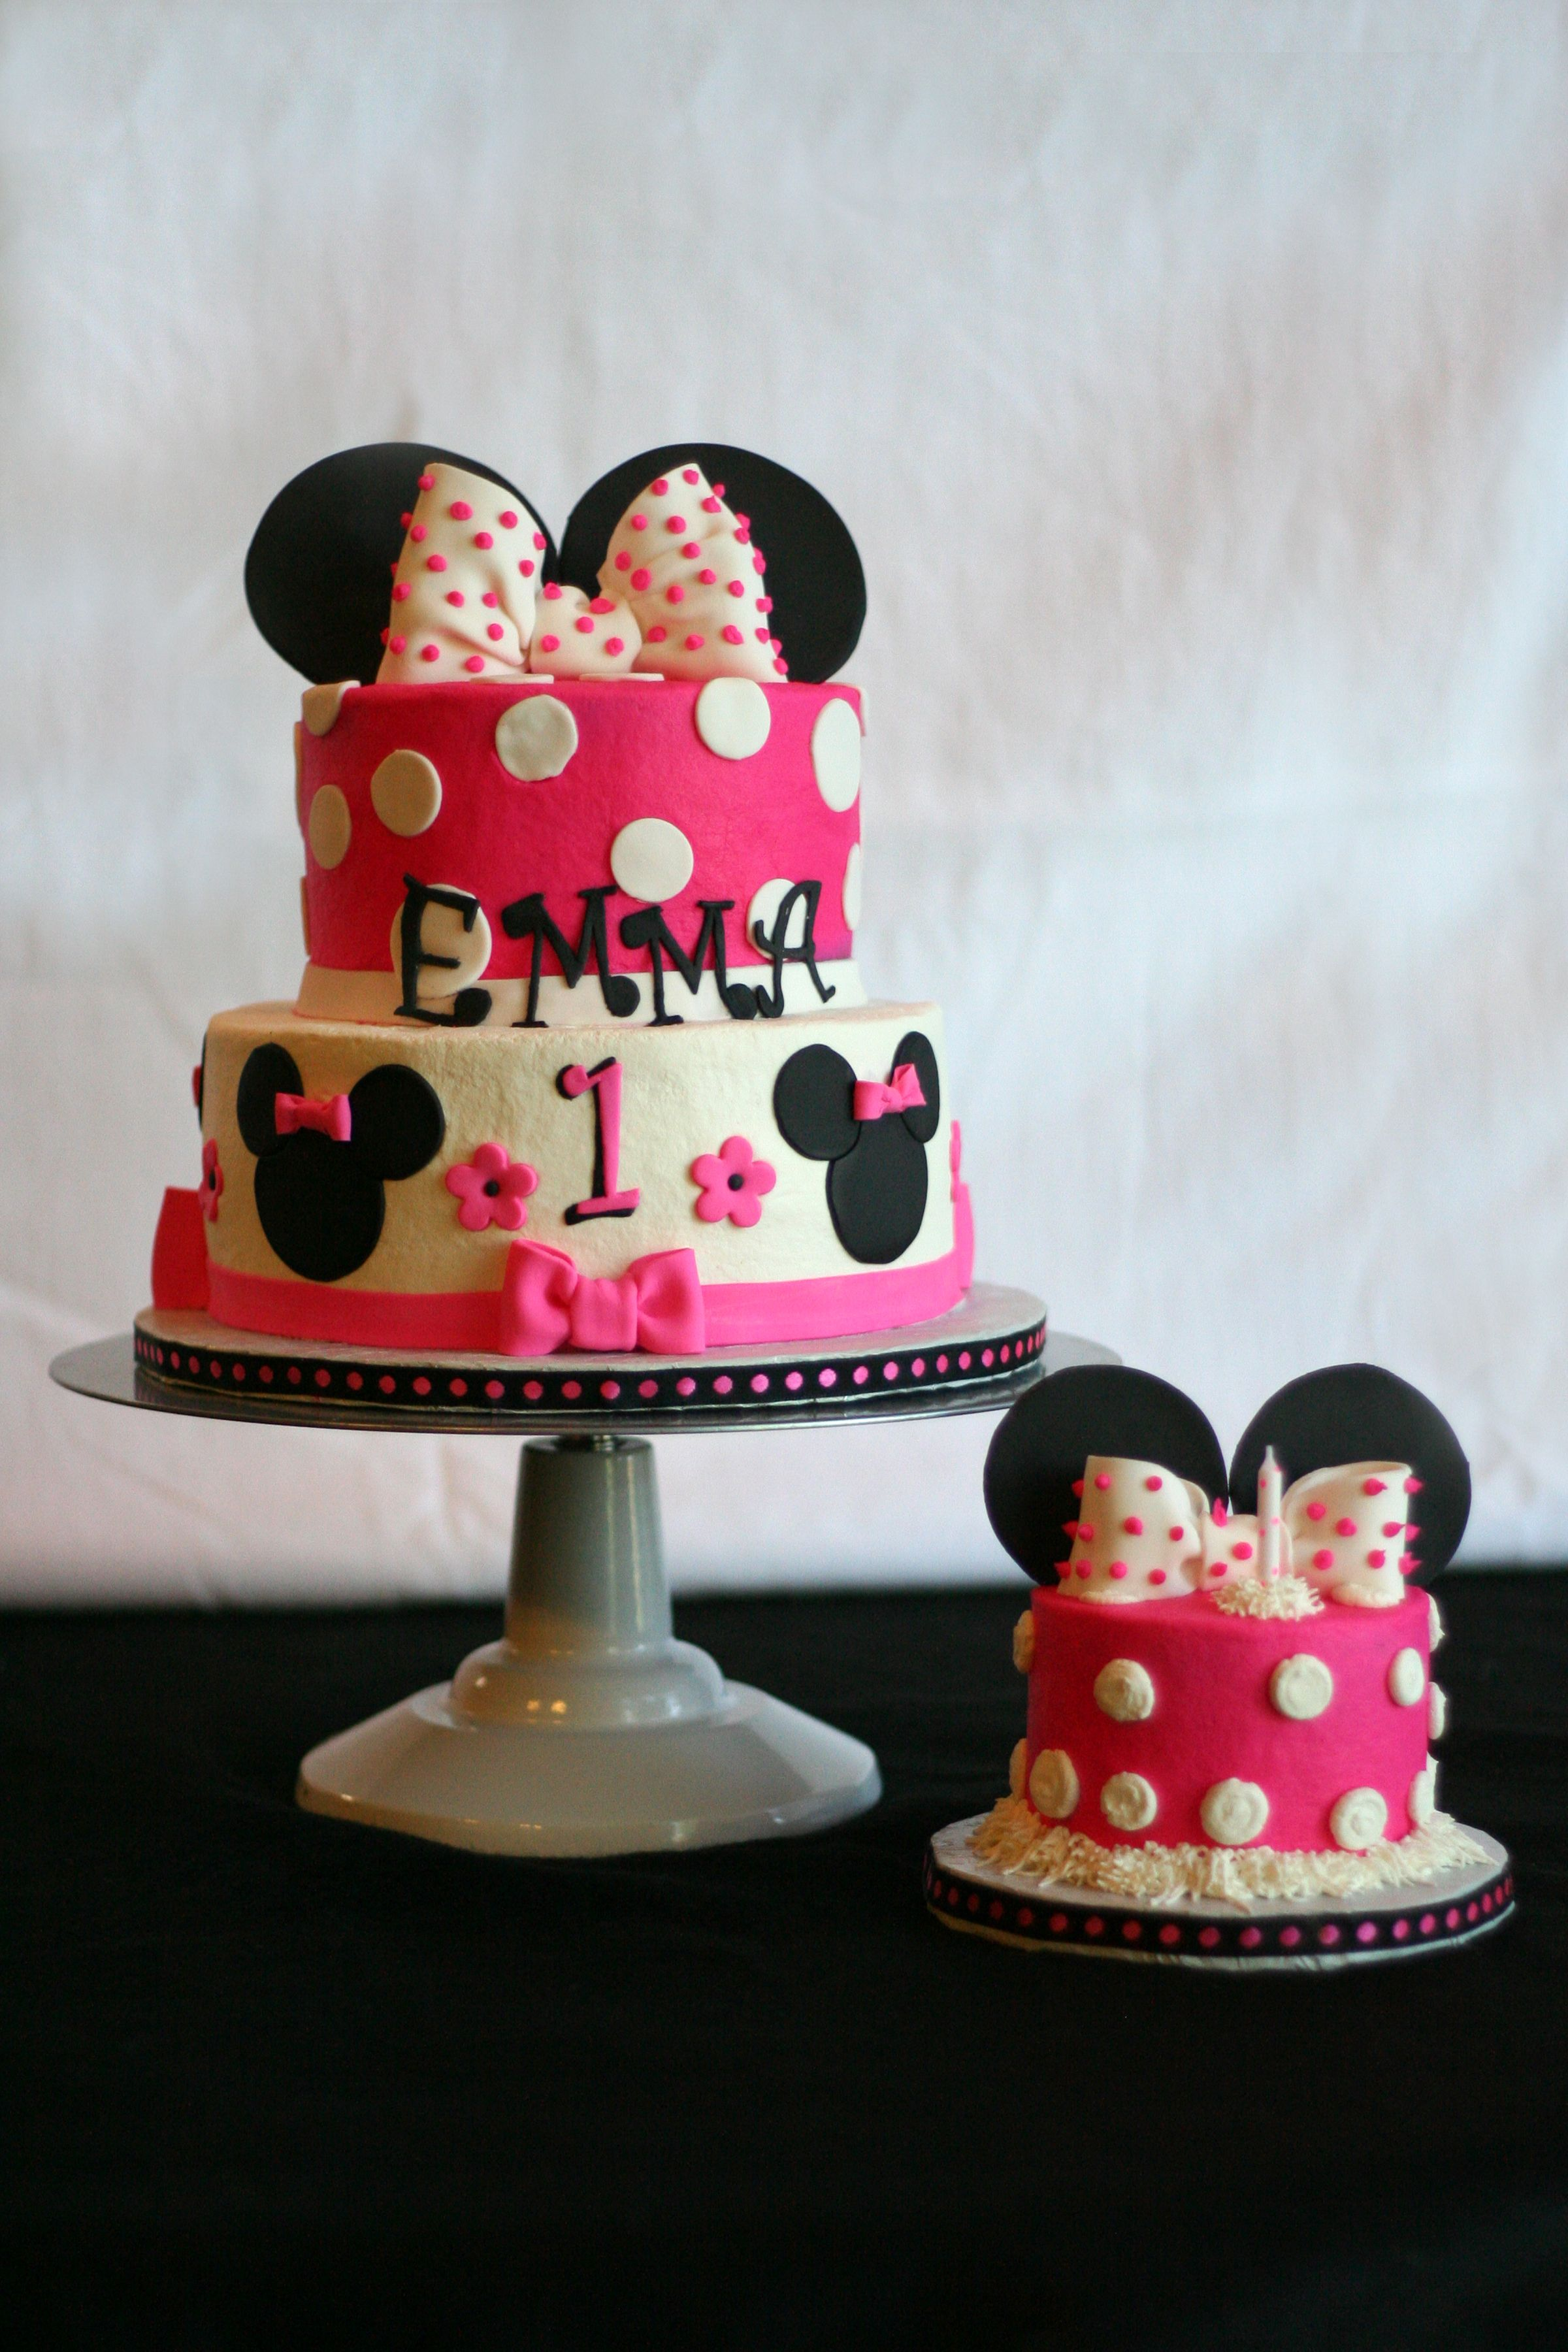 Fabulous The Cake And Smash Cake I Chose As A Cake To Work Off Of The Funny Birthday Cards Online Ioscodamsfinfo